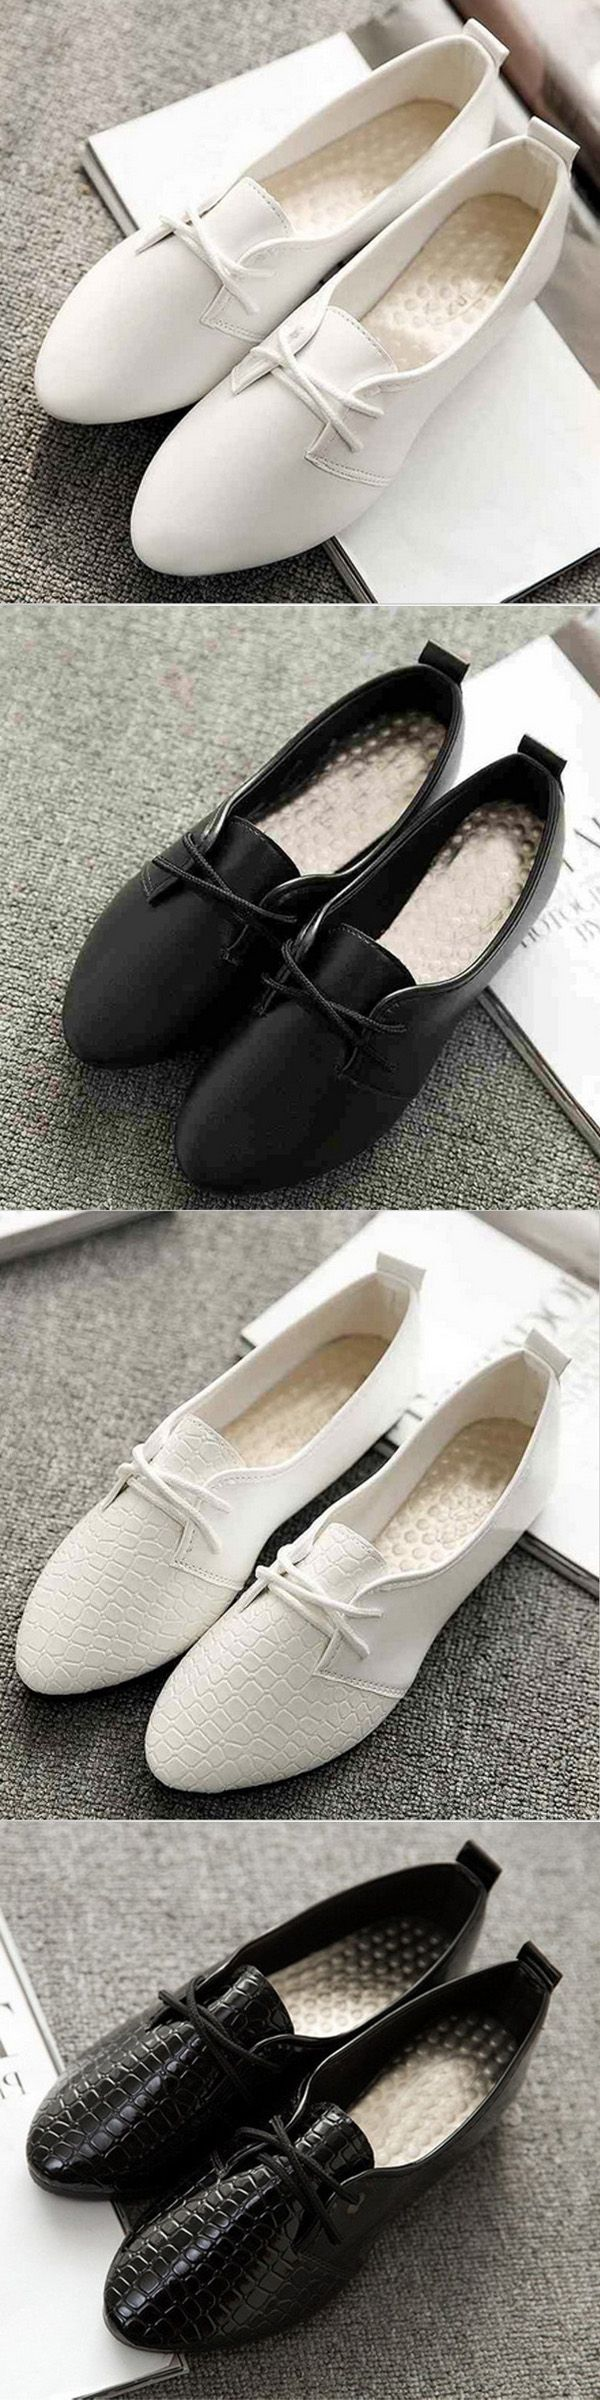 【ONLY US$7.32 】Pure Color Pointed Toe Flat Lace Up Shoes